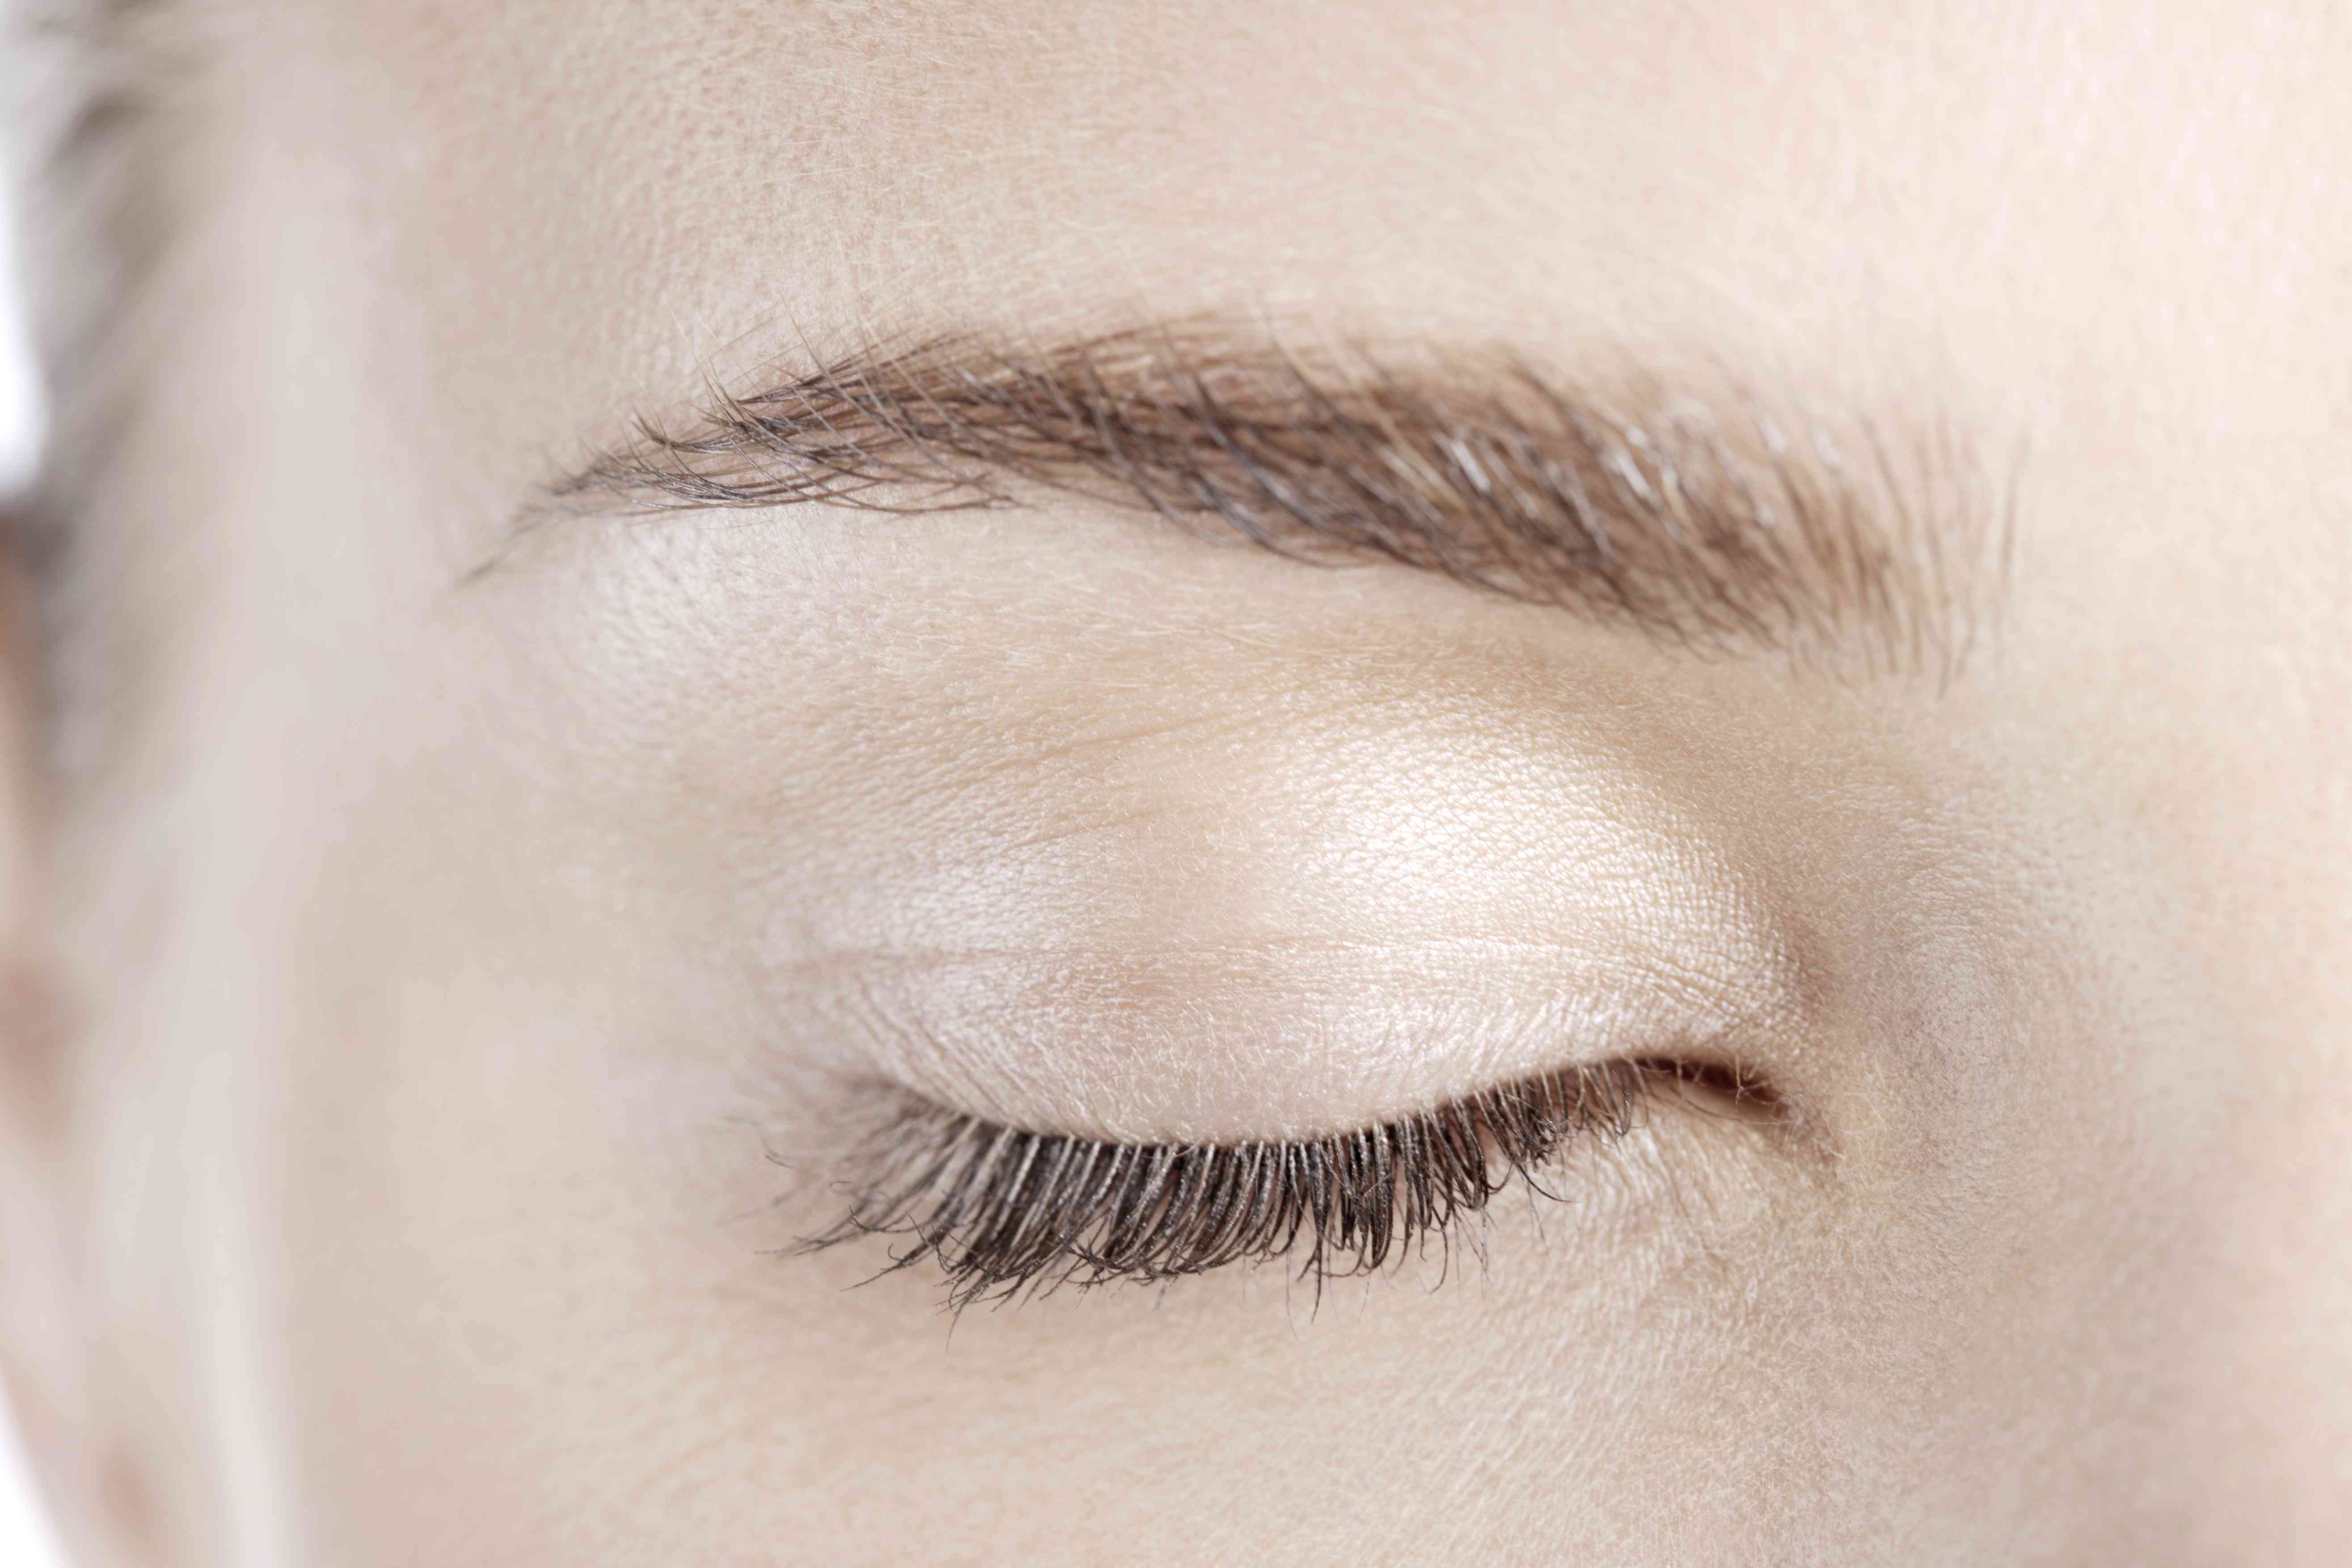 Close up of a person's closed eye